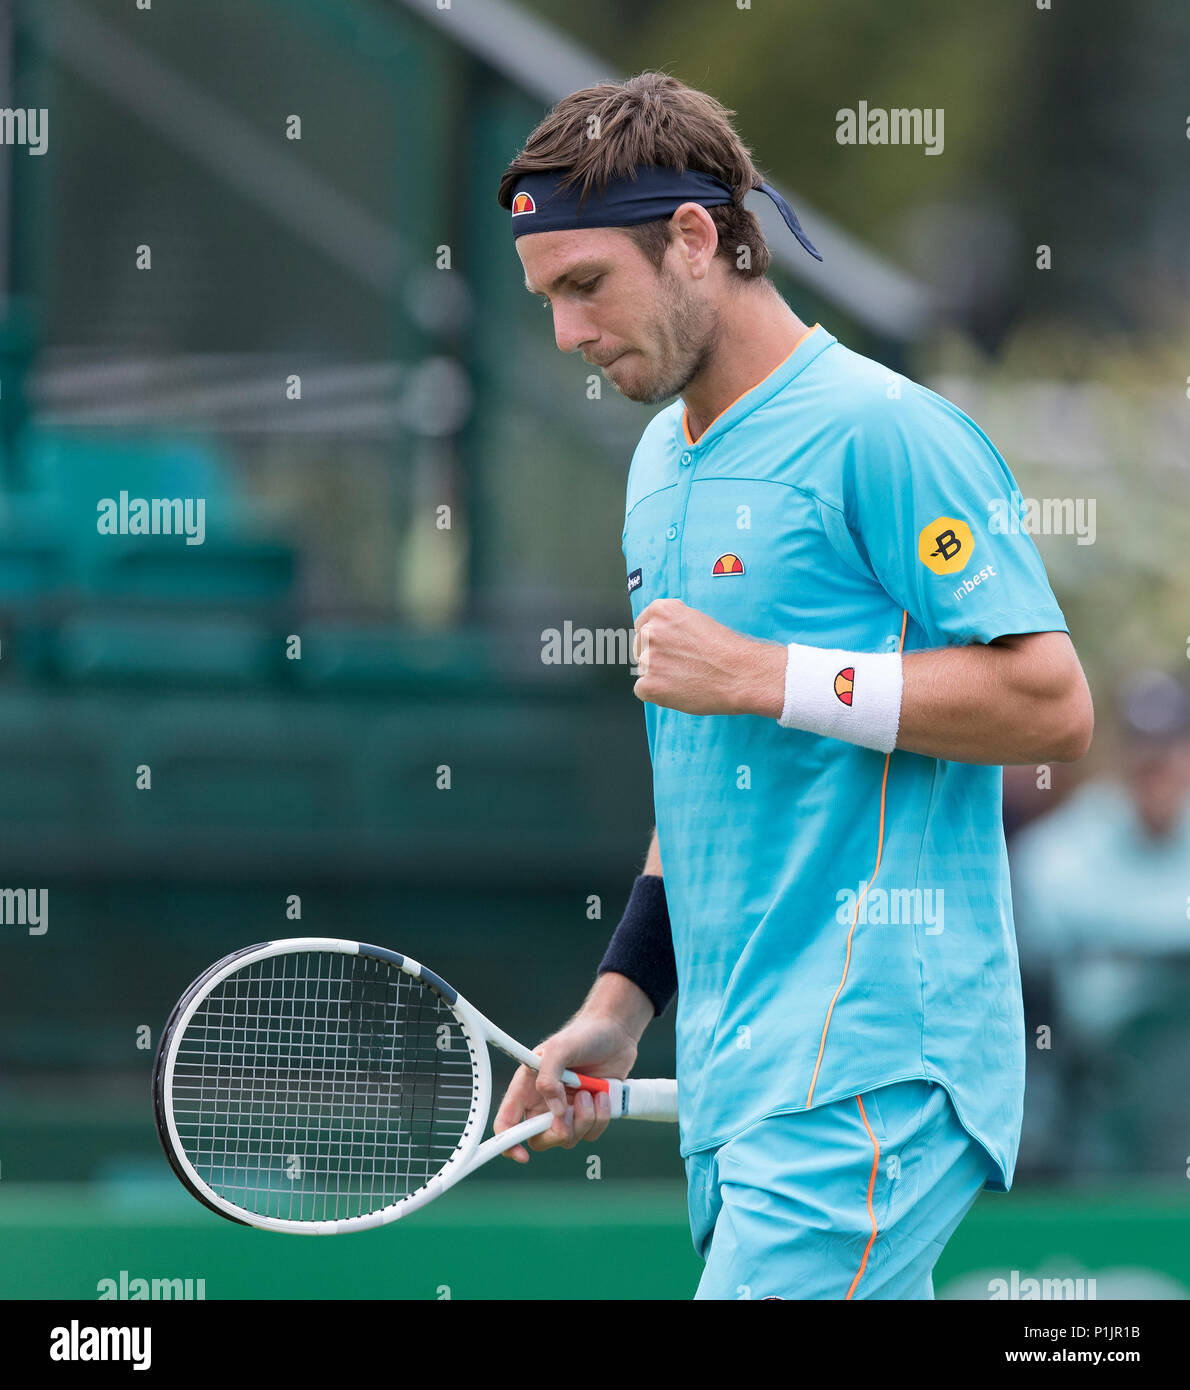 Cameron Norrie Tennis Cameron Norrie V Tatsuma Ito Nature Valley